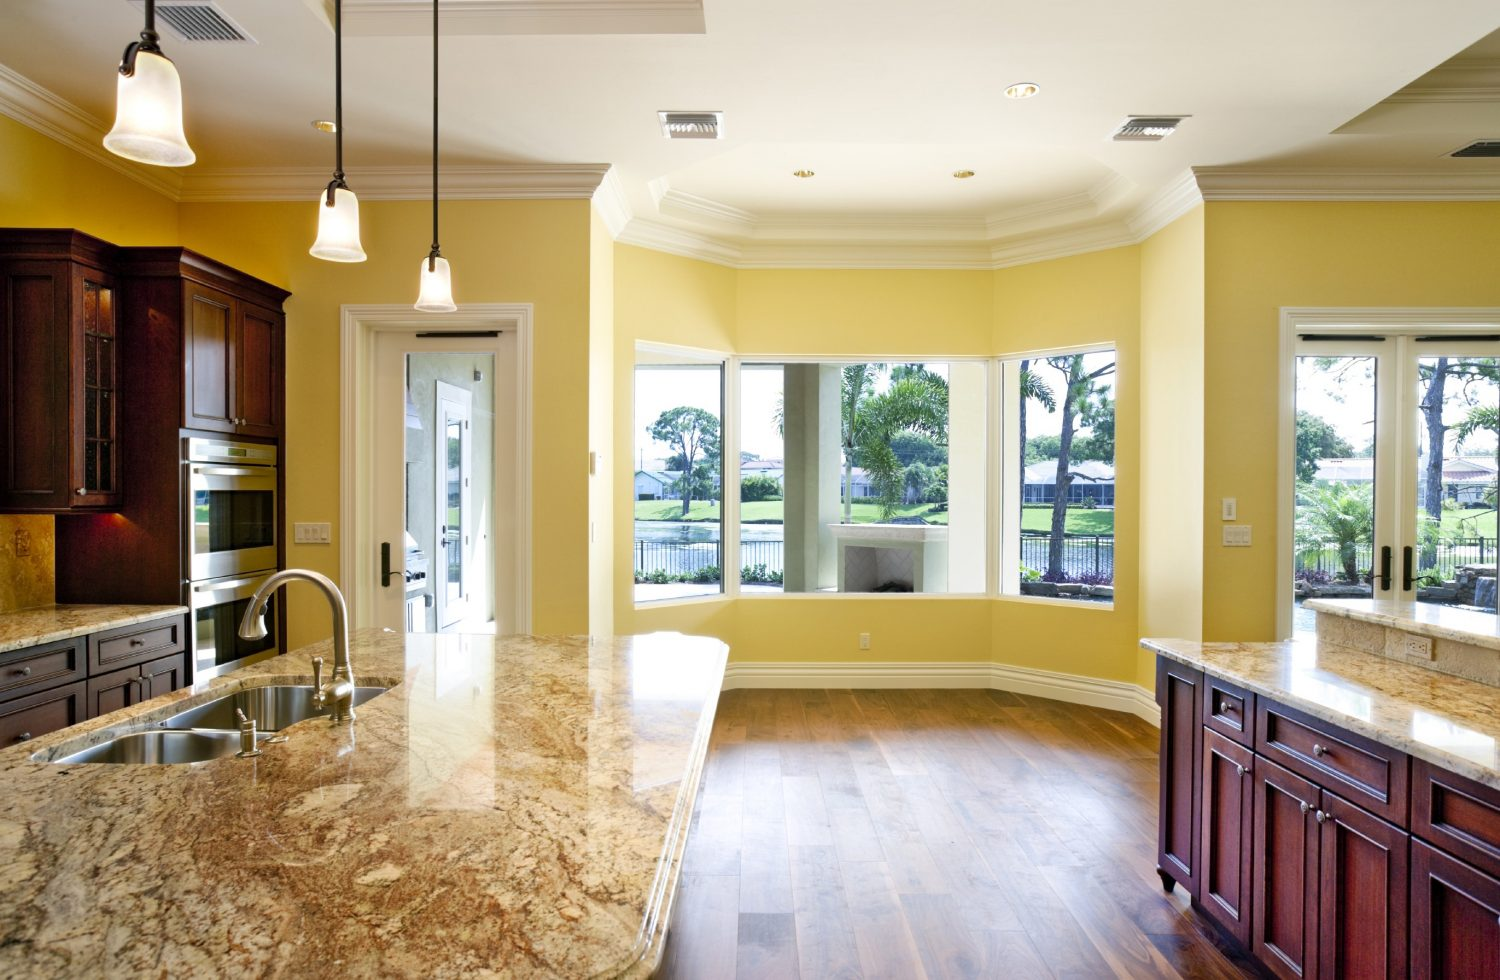 A yellow wall will a bay window looking out onto a neighborhood lake.